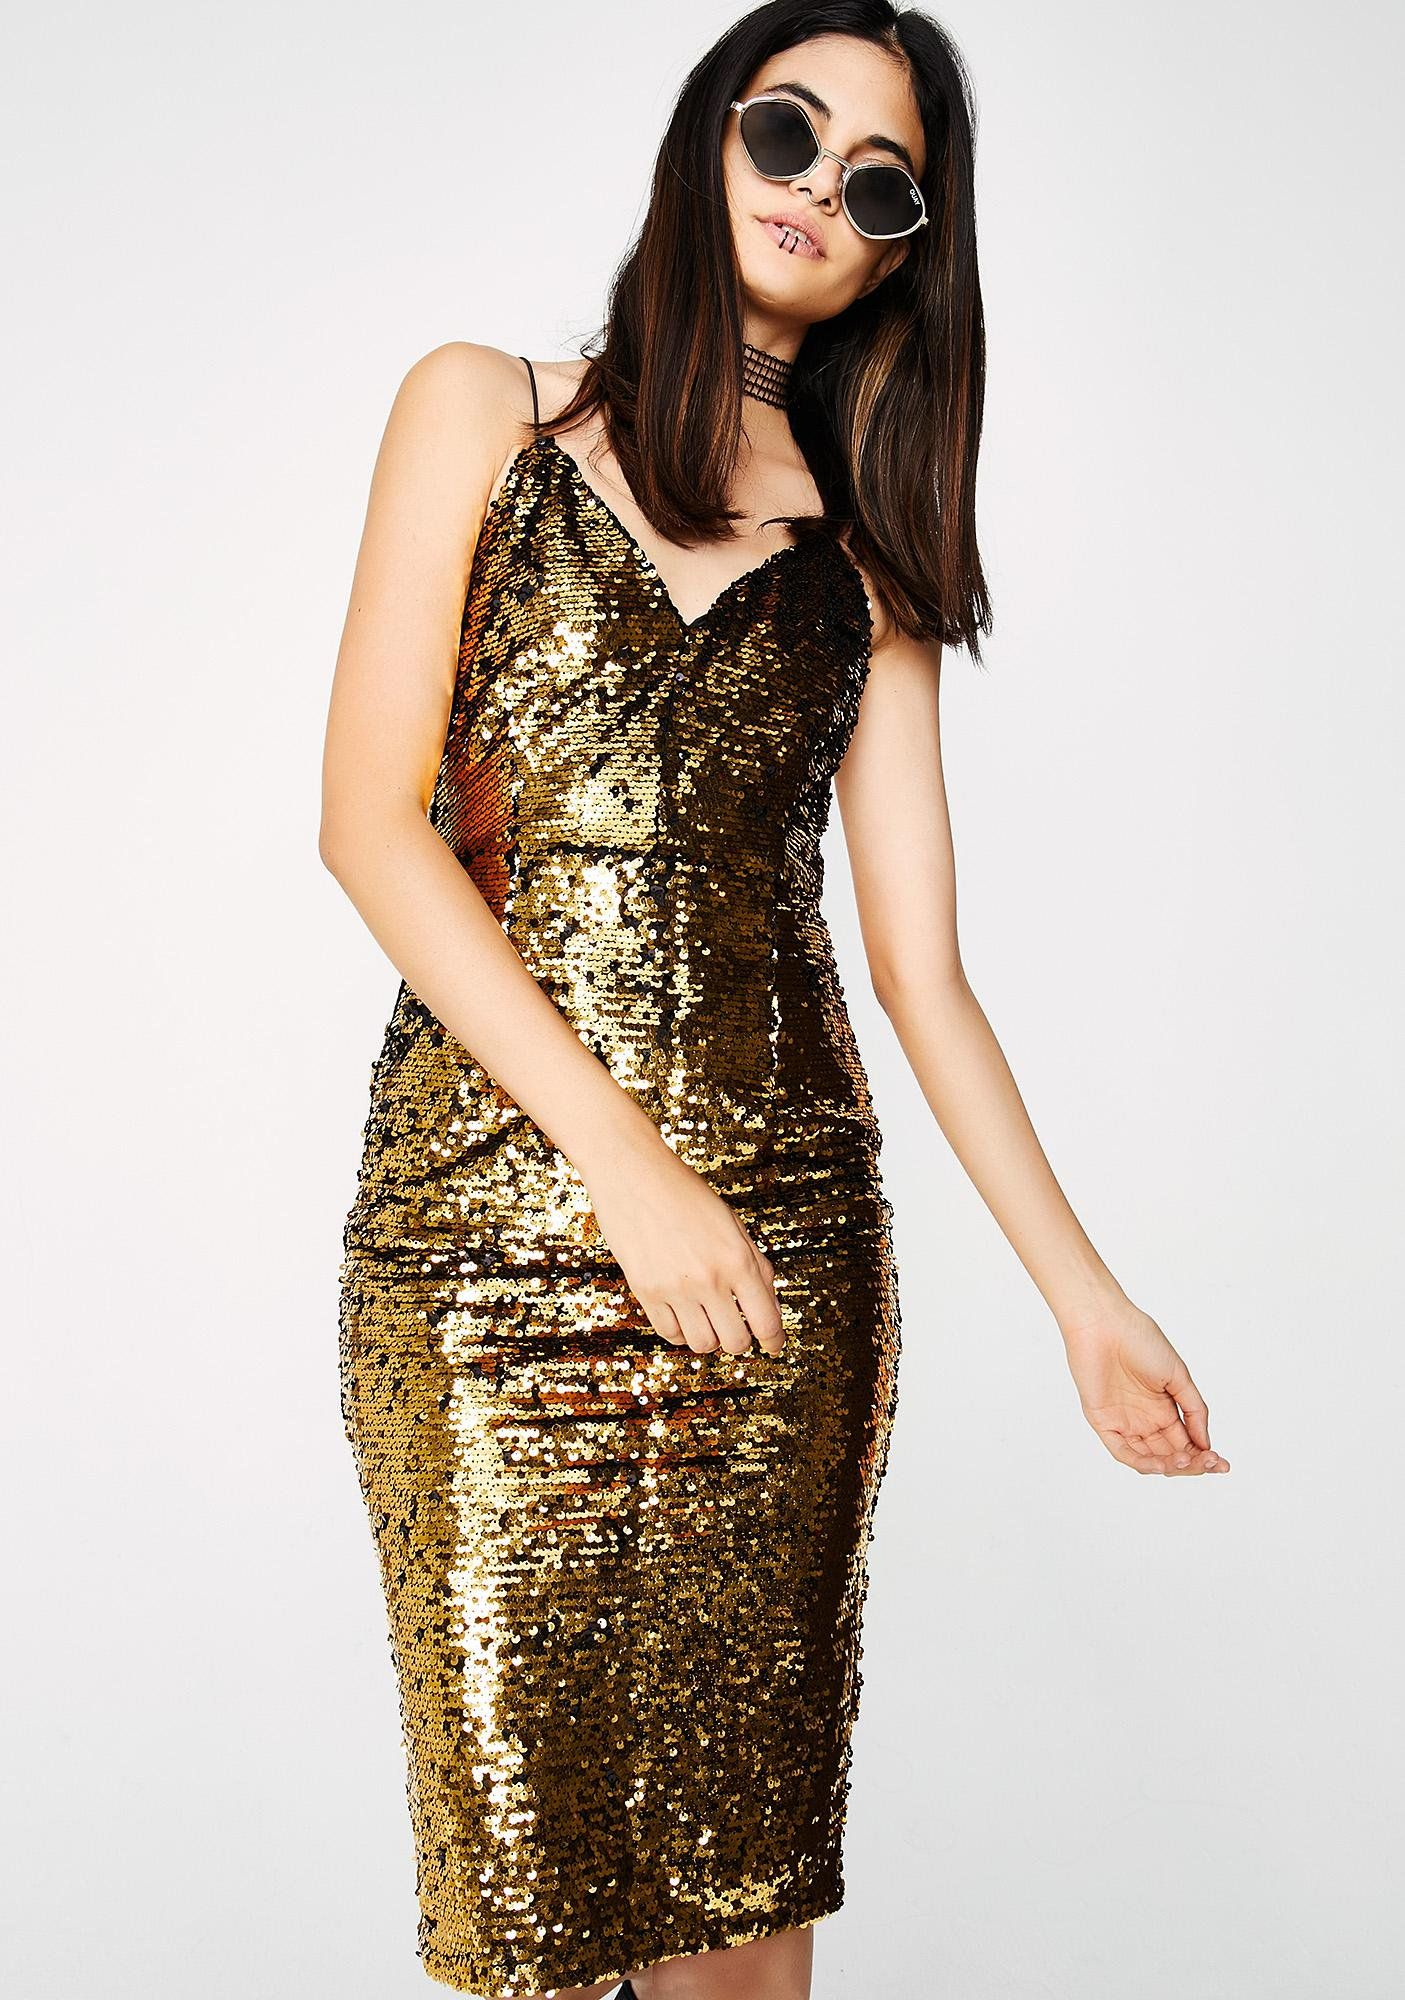 11d744cc64a Steal The Show Sequin Dress cuz you luv havin  all eyes on you. This ...